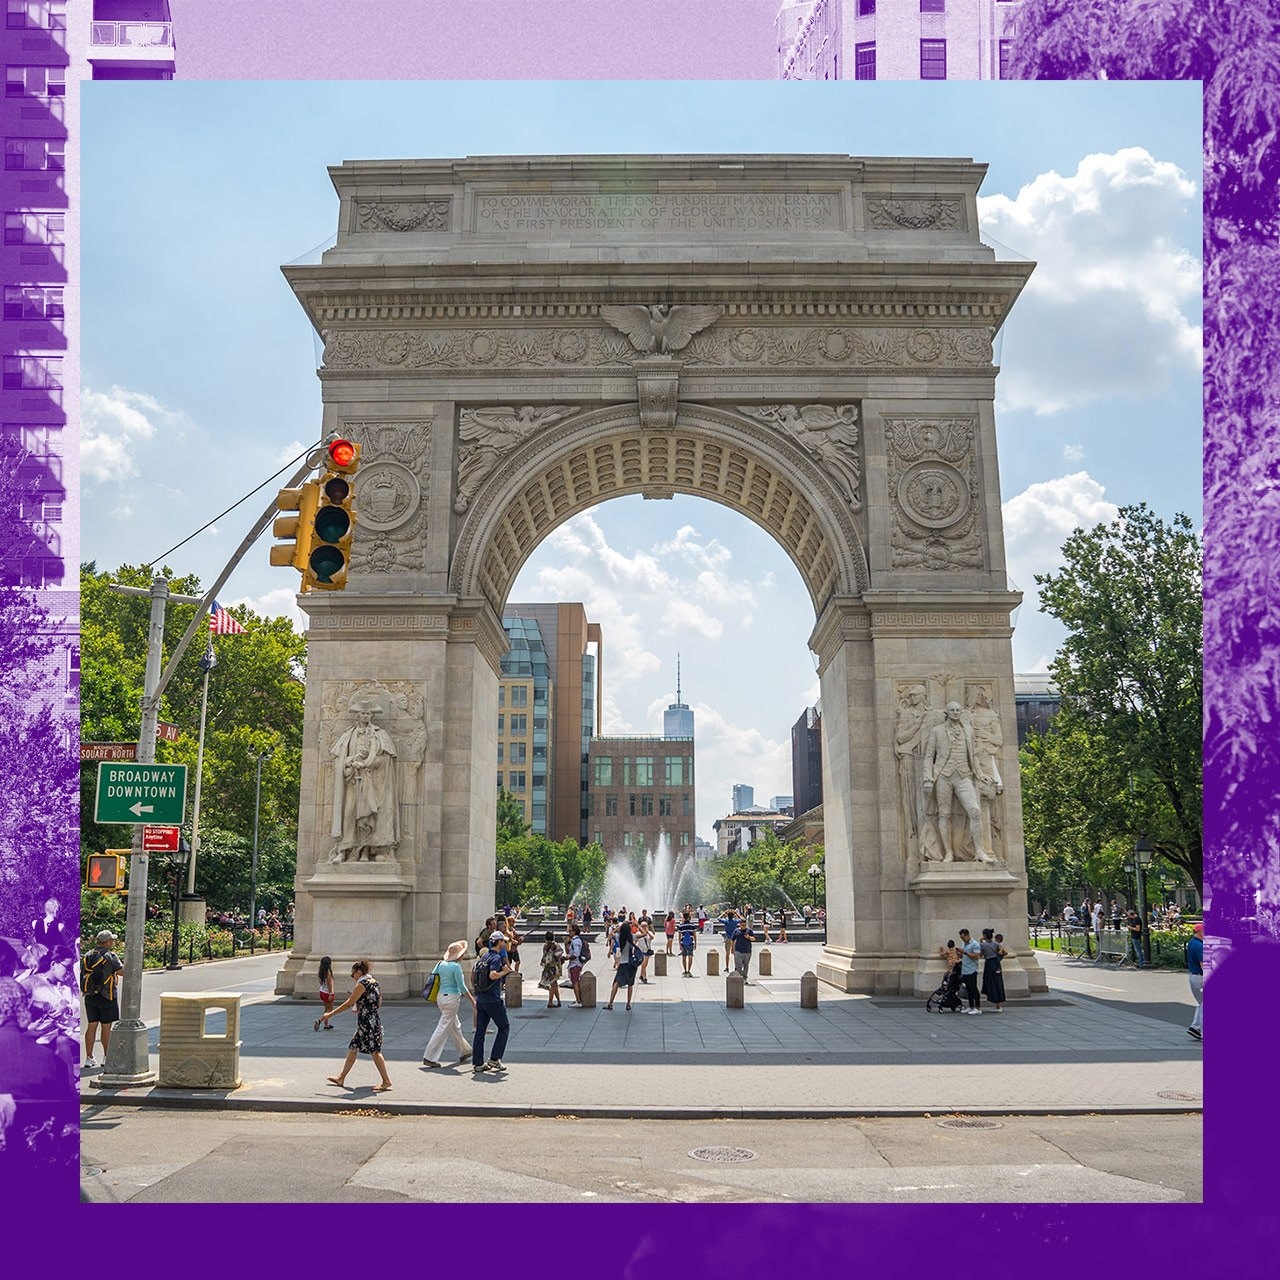 The Washington Square Arch with the fountain in the background